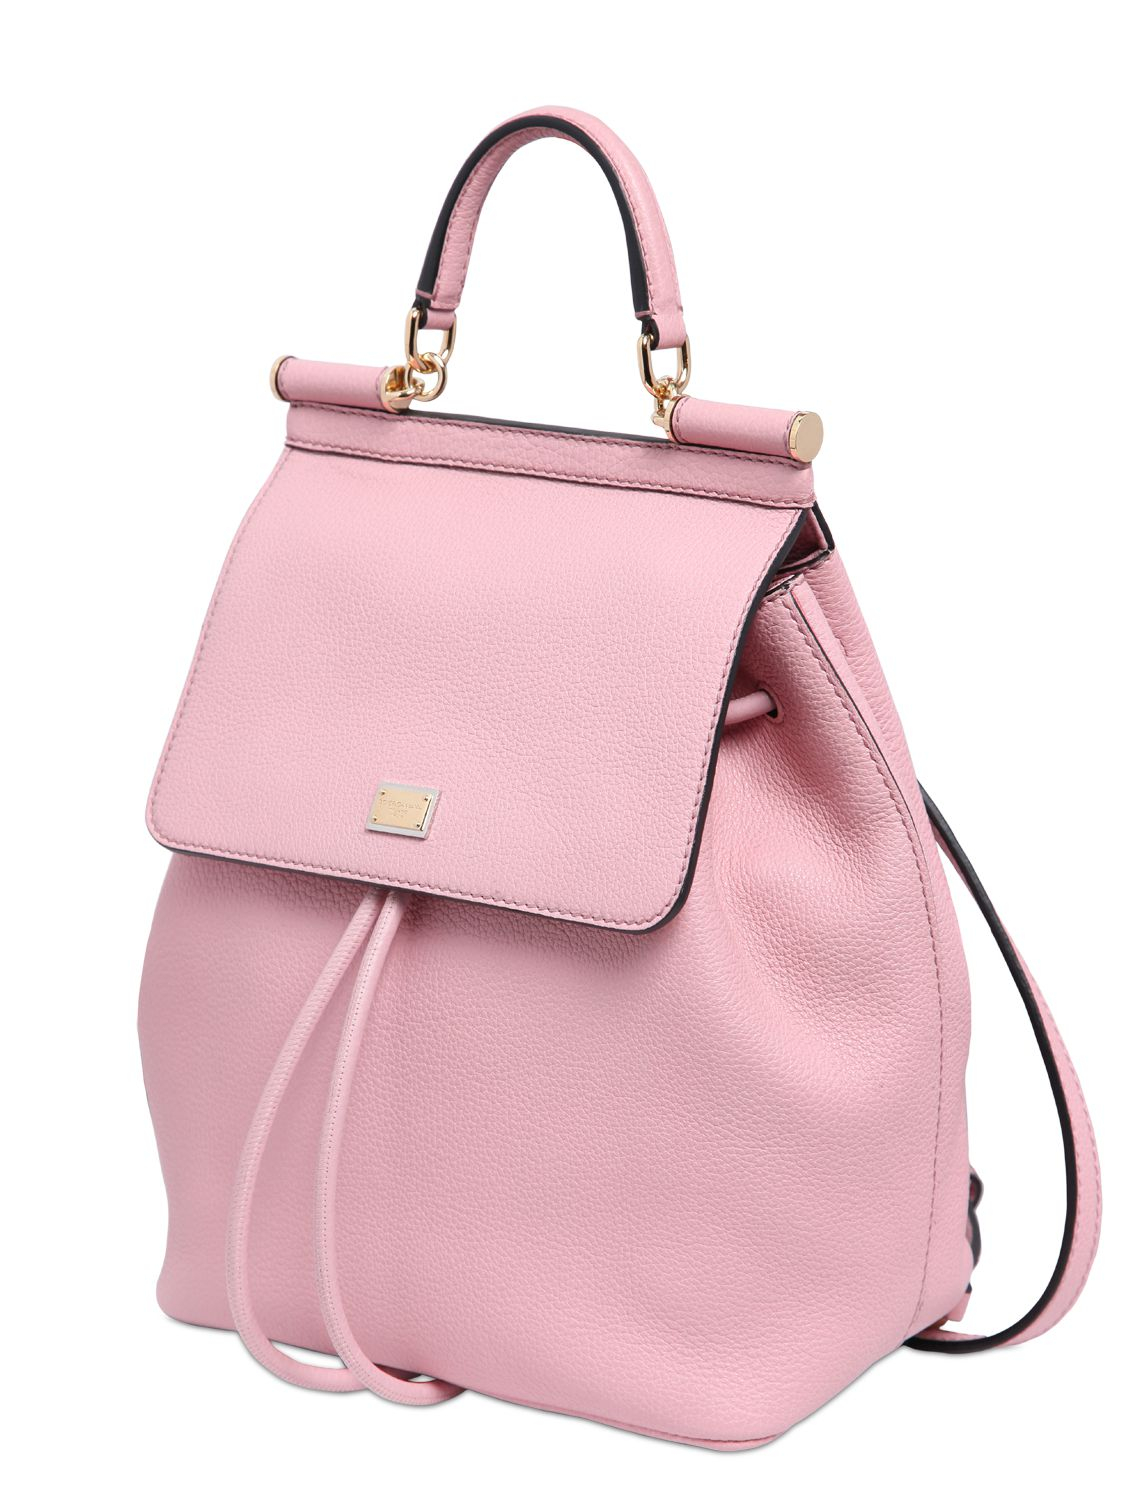 Pink Leather Backpack o6WvKoVK